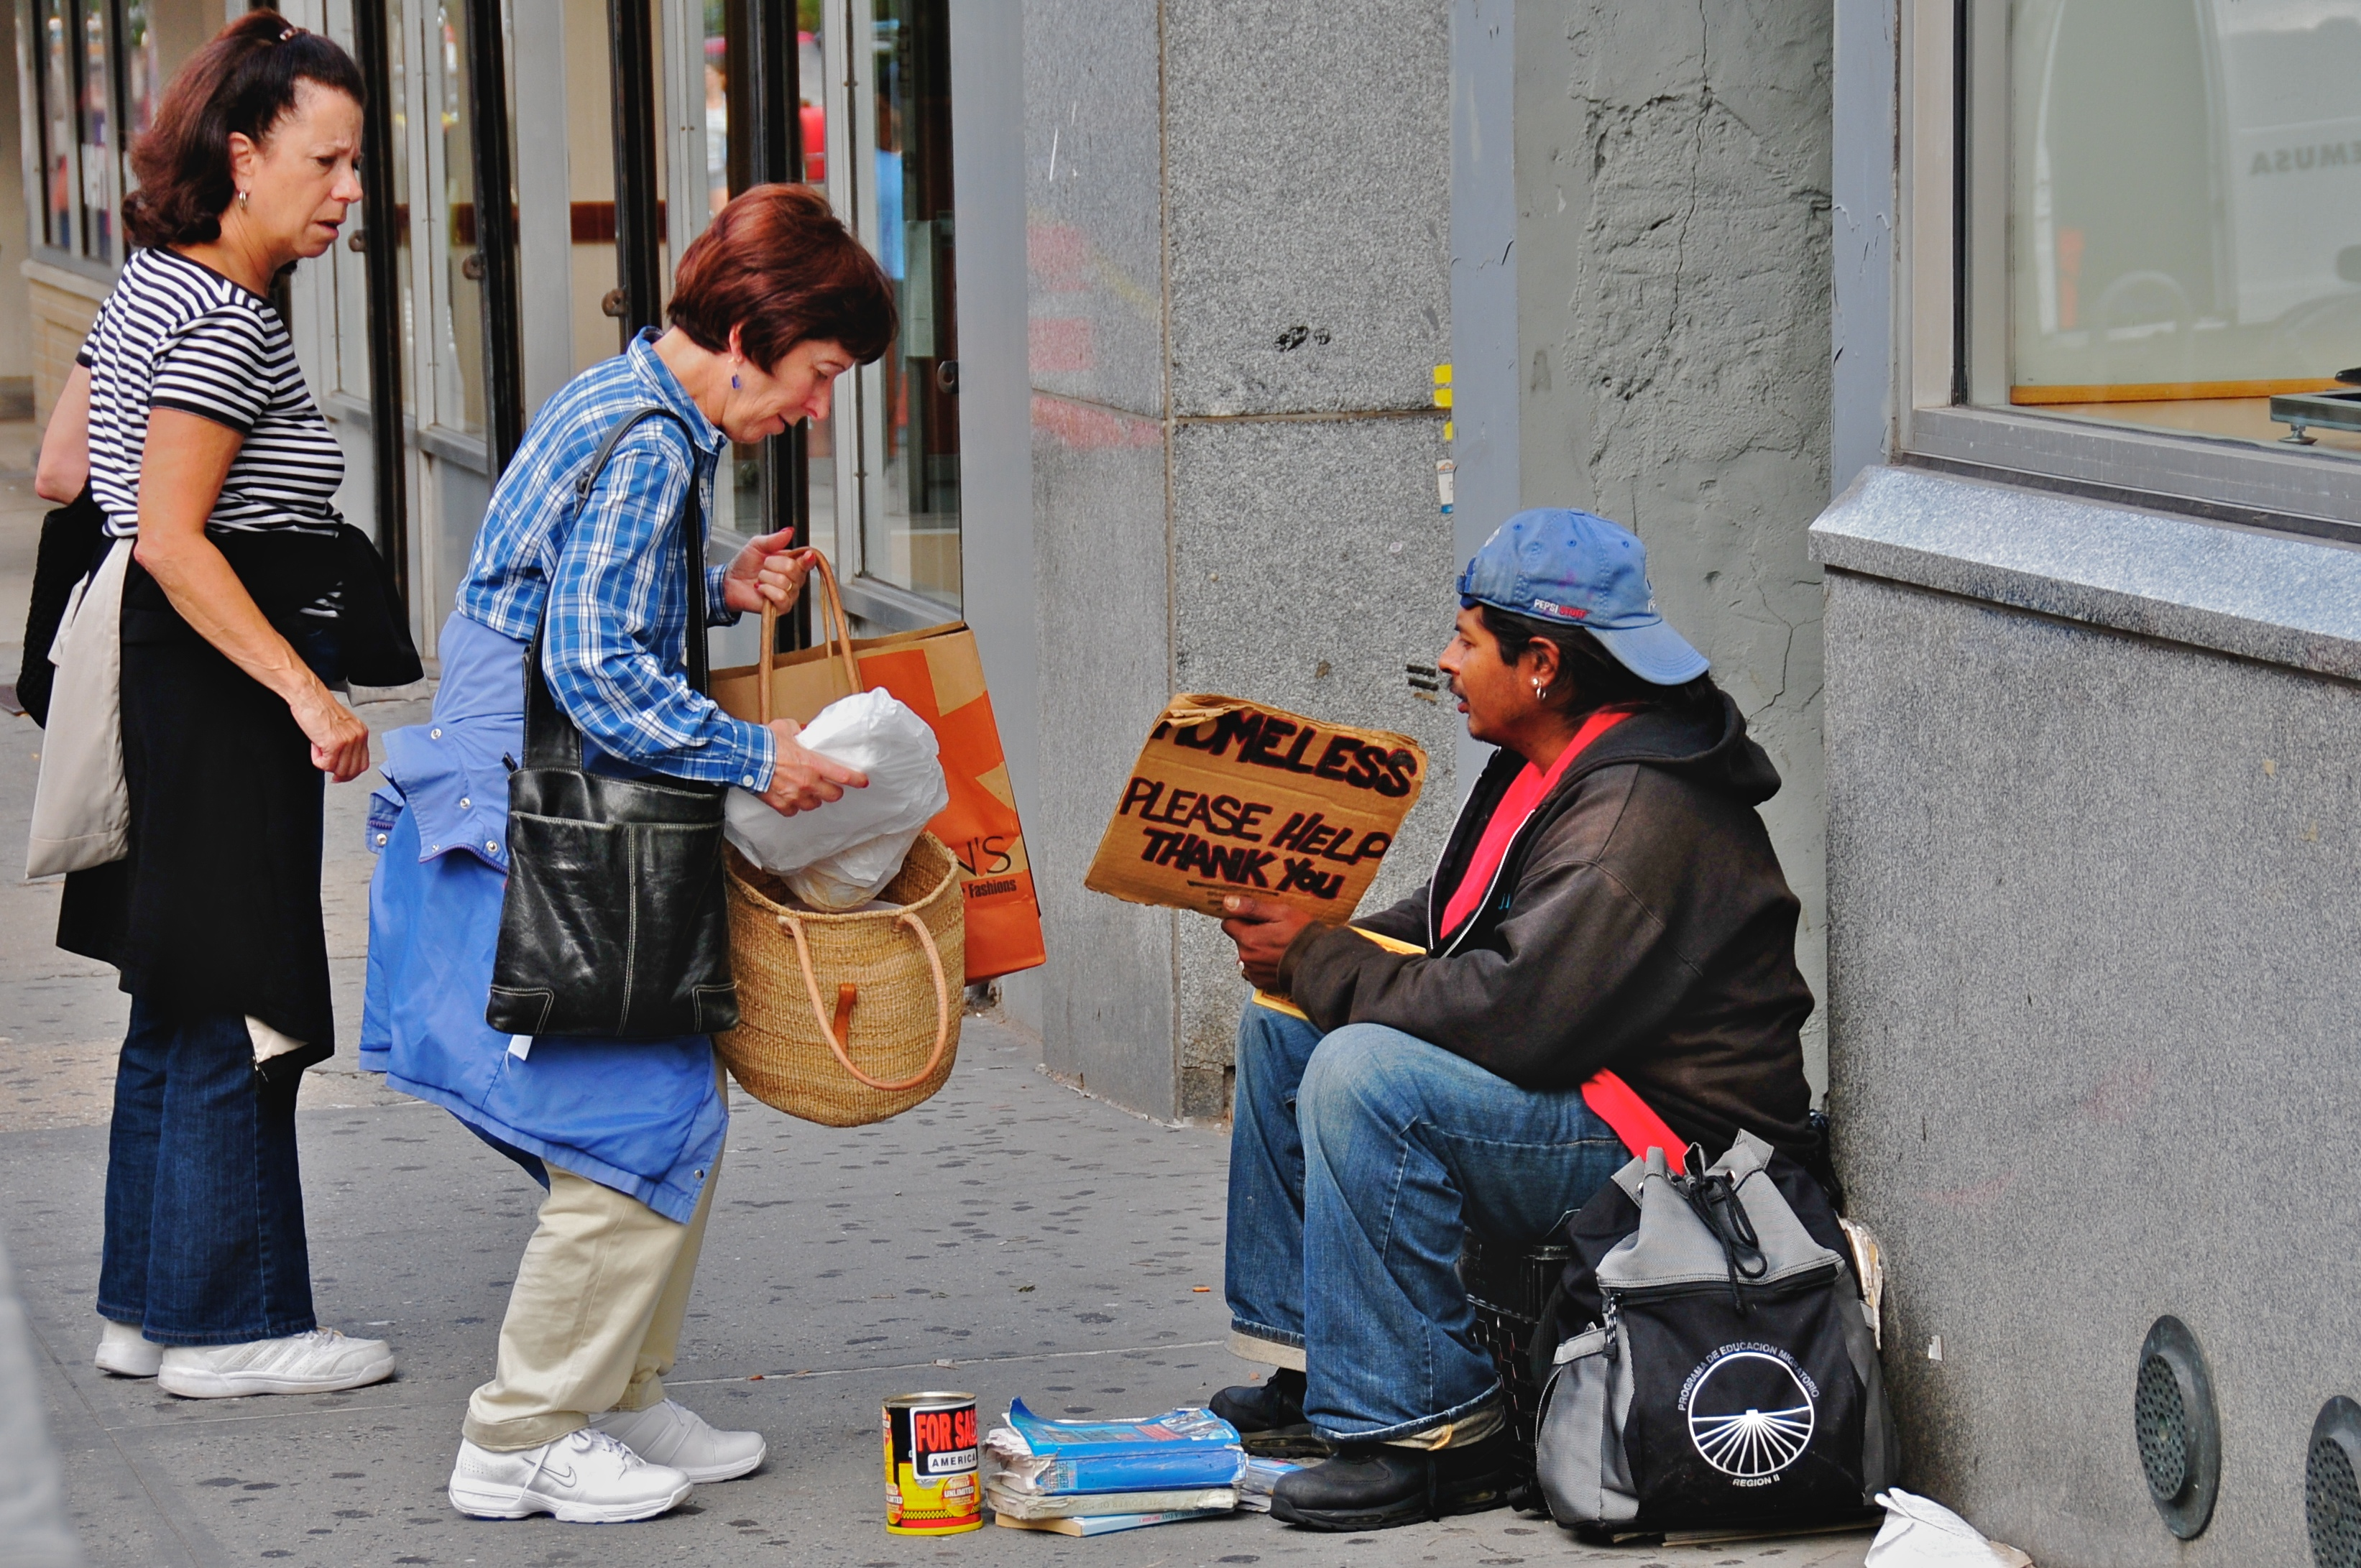 file:helping the homeless - wikimedia commons